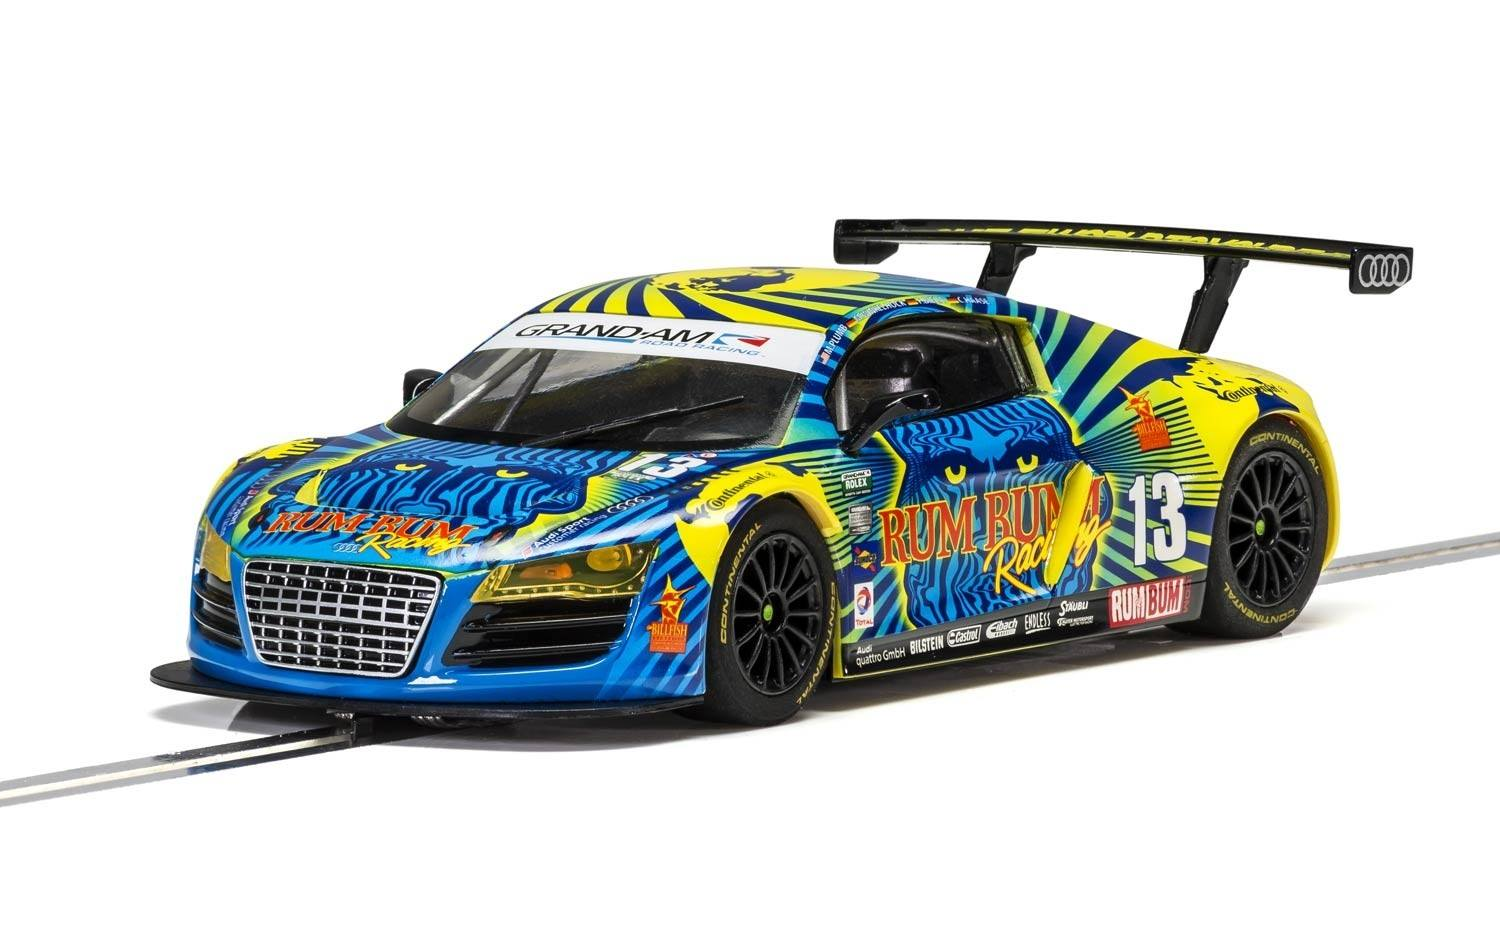 Audi R8 LMS, Rum Bum Racing #13 1/32 Slot Car